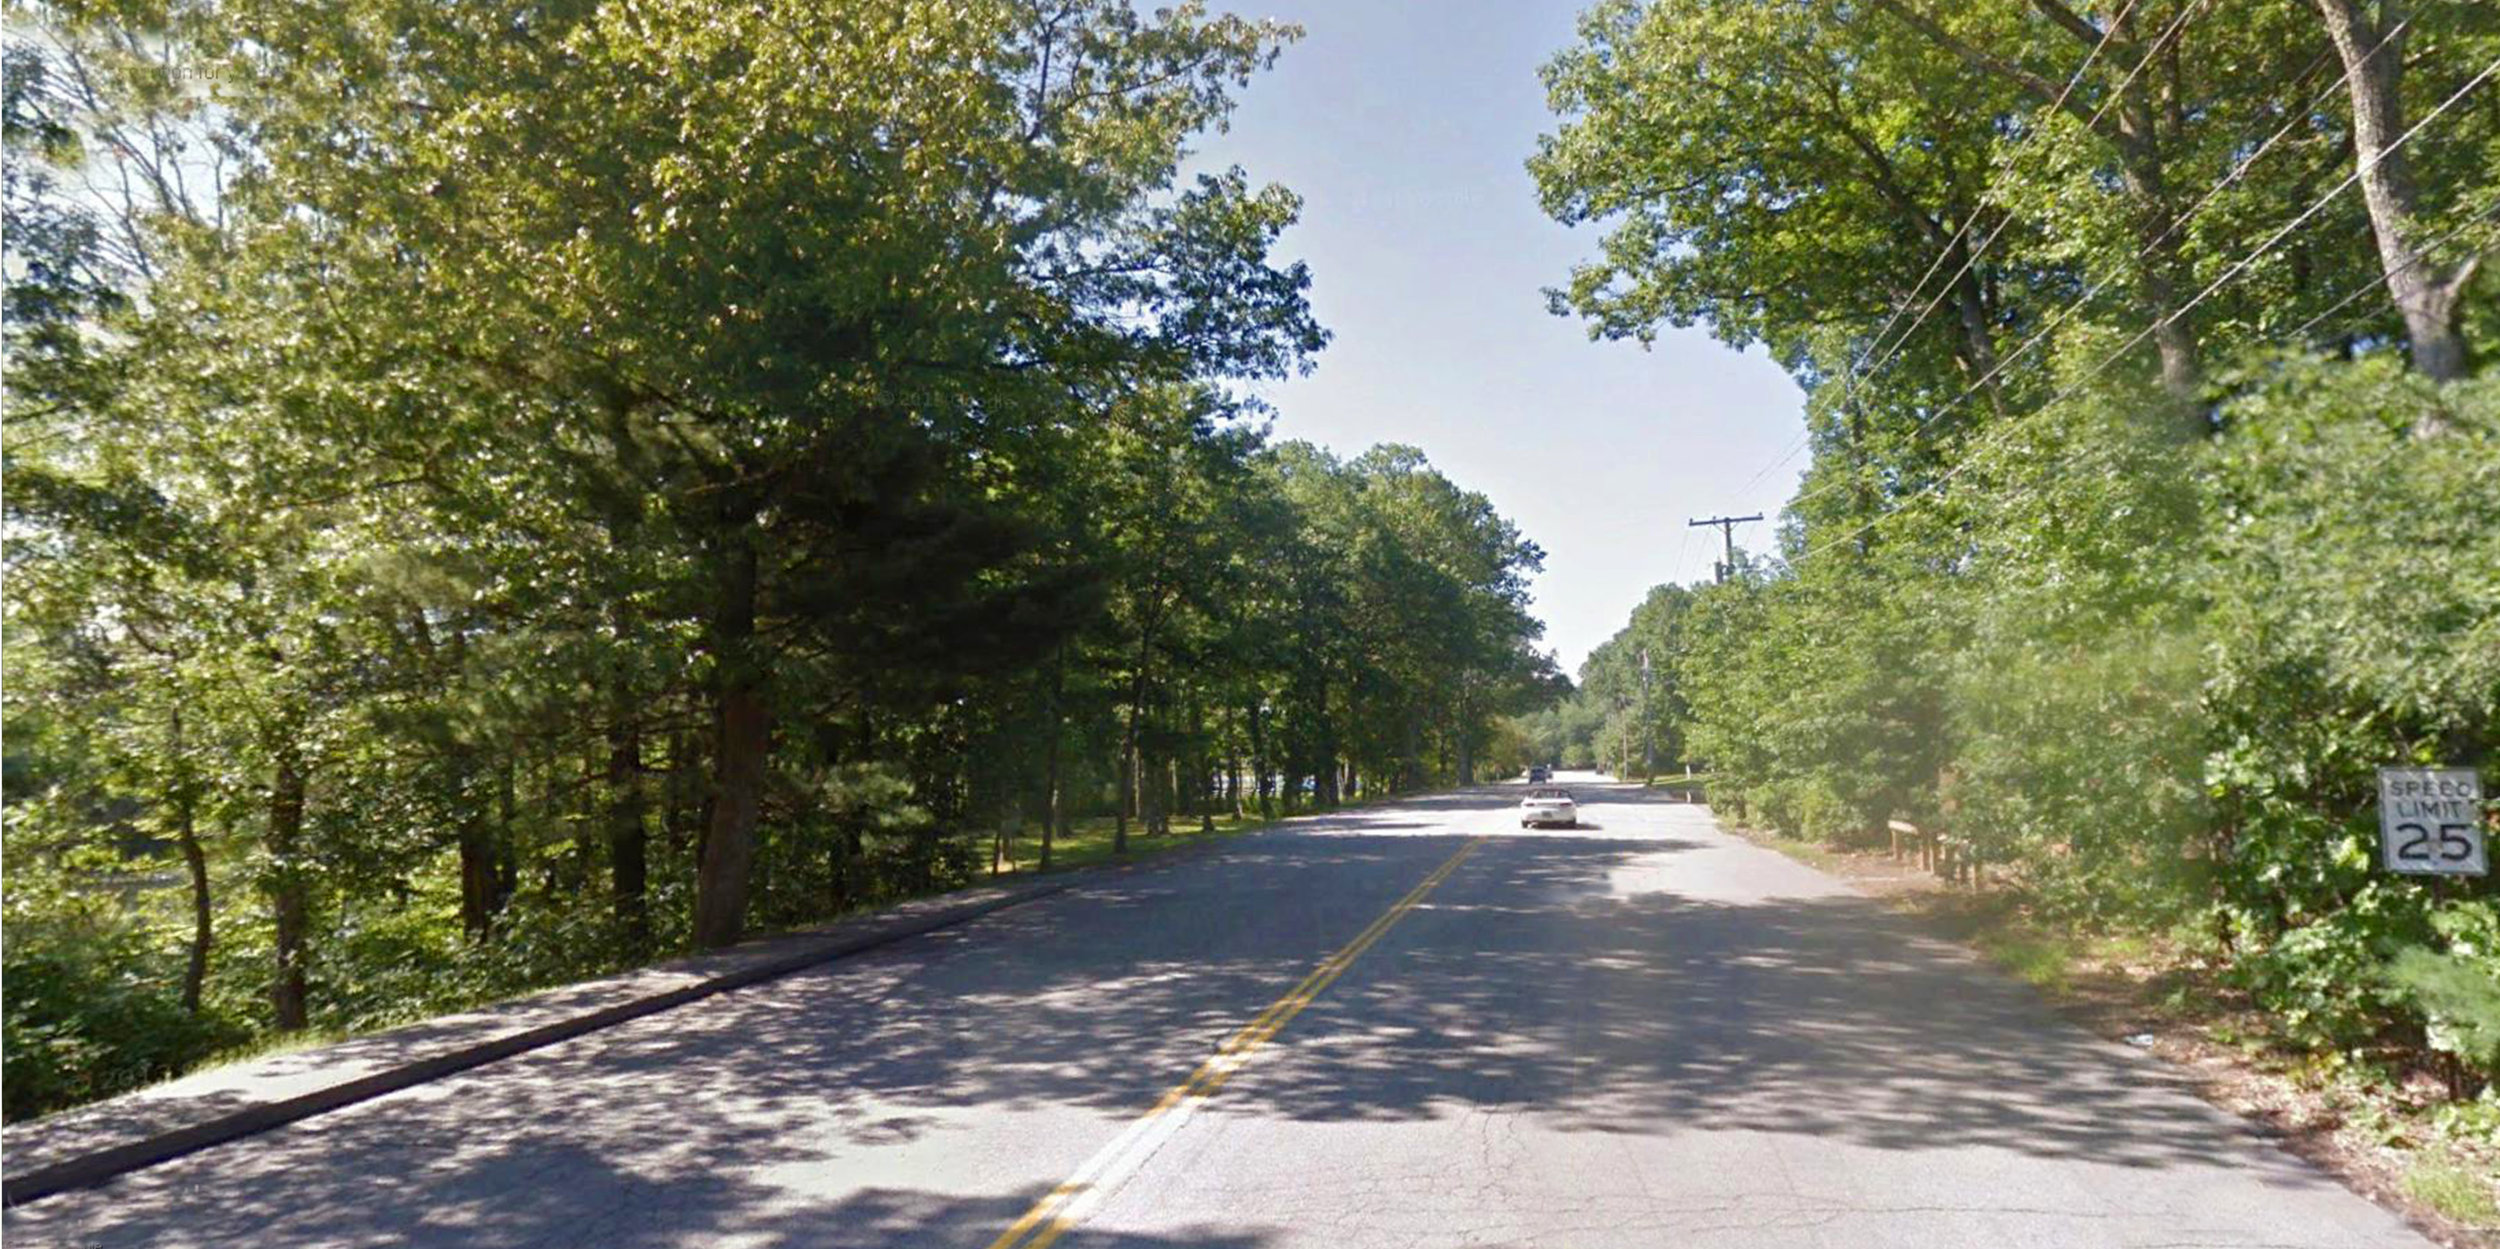 12 ALA - SANFORD Parkway North Entry Existing.jpg